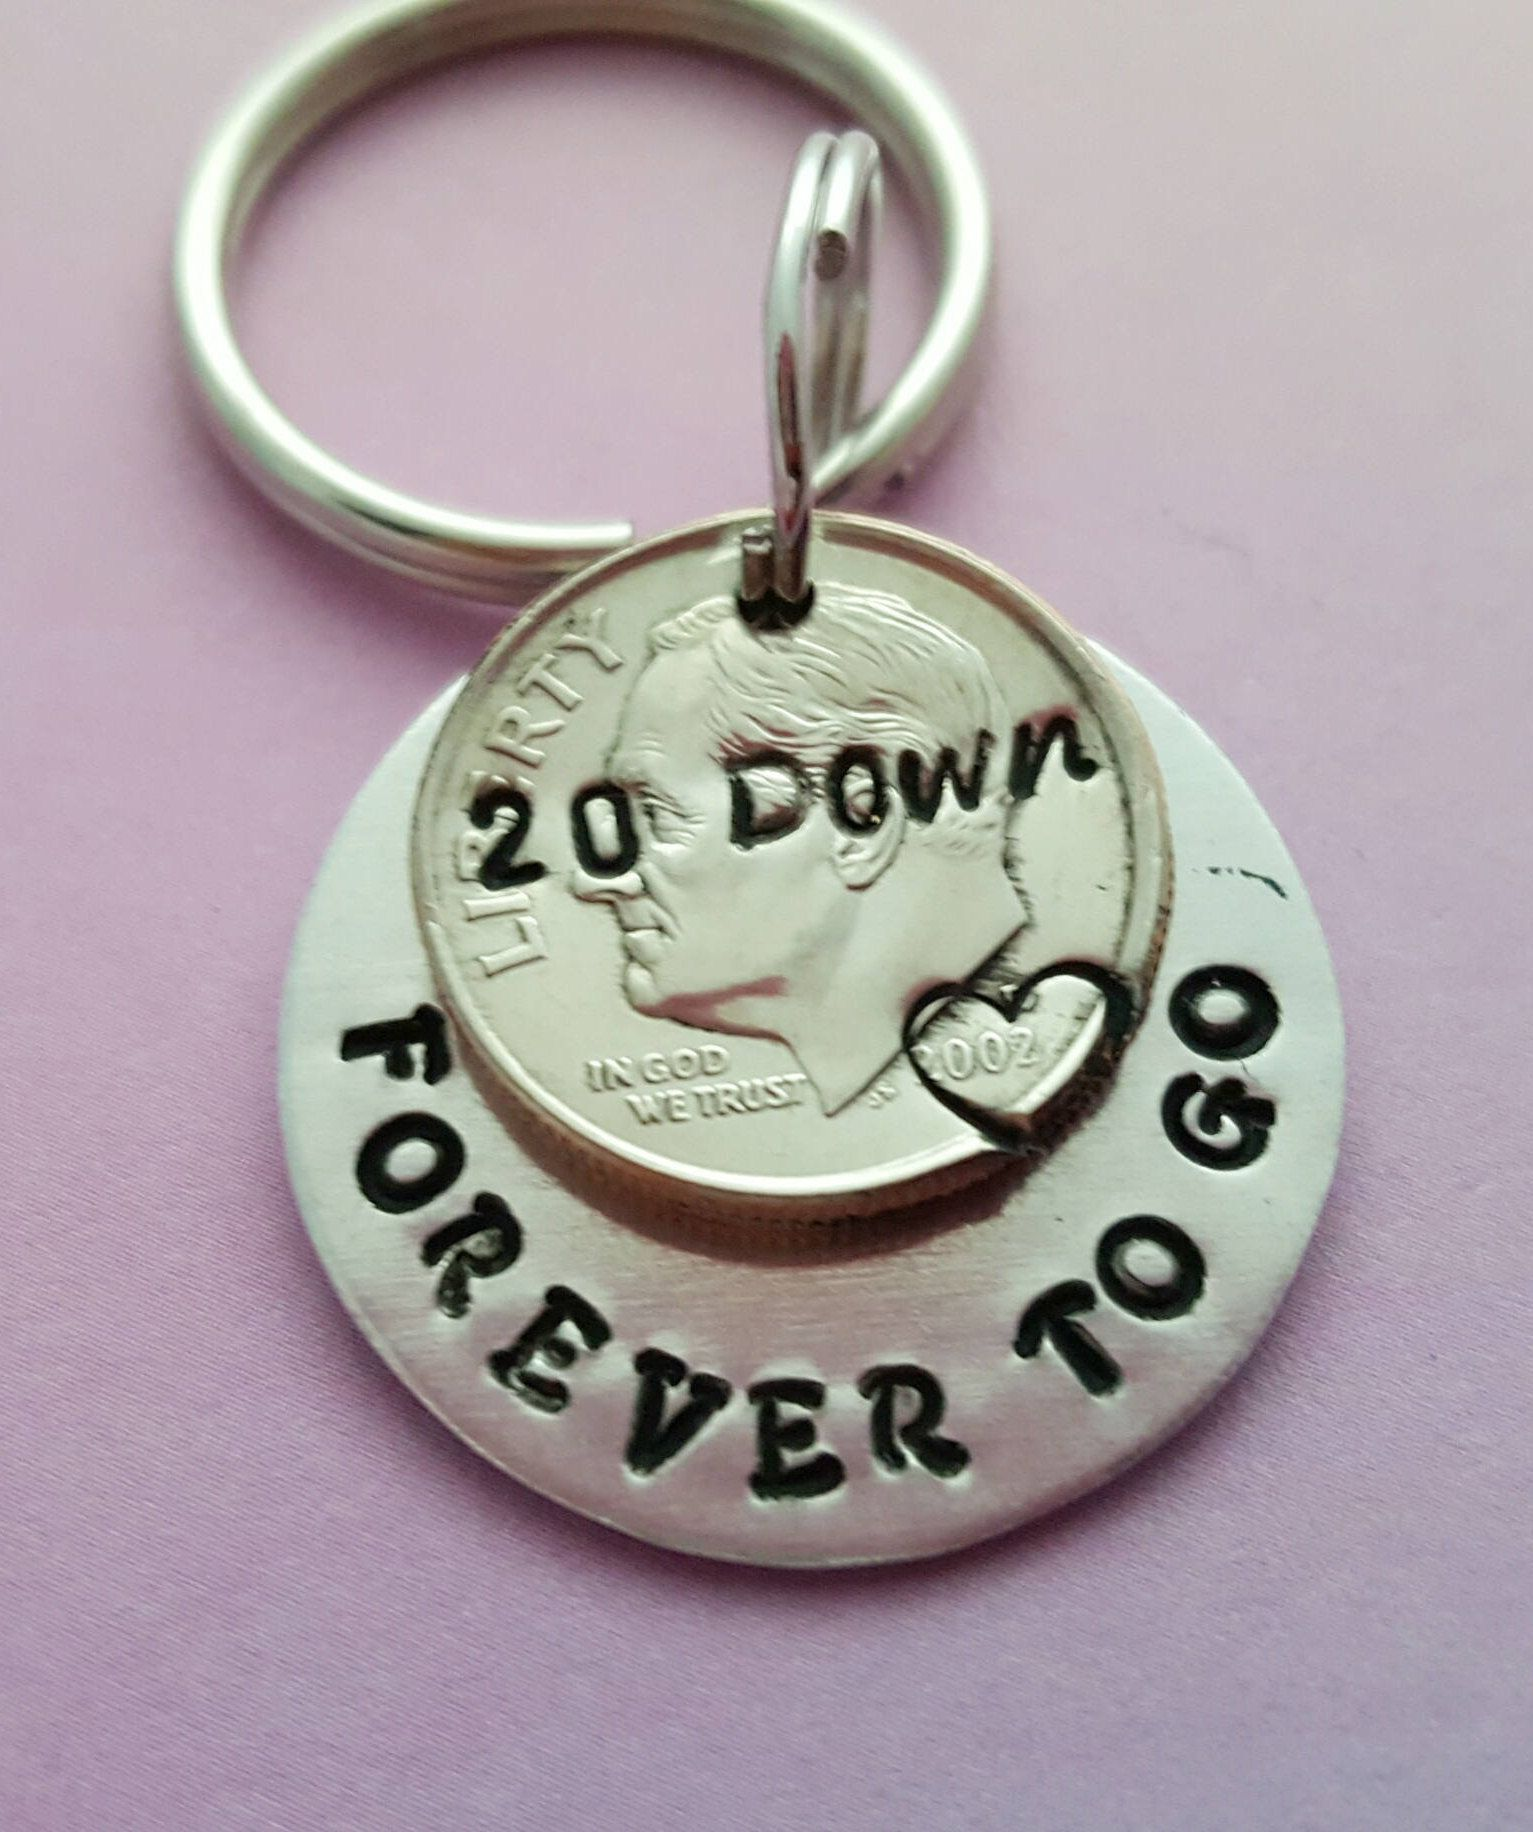 20th Anniversary Gift Idea 20 Year Wedding Anniversary Keychain